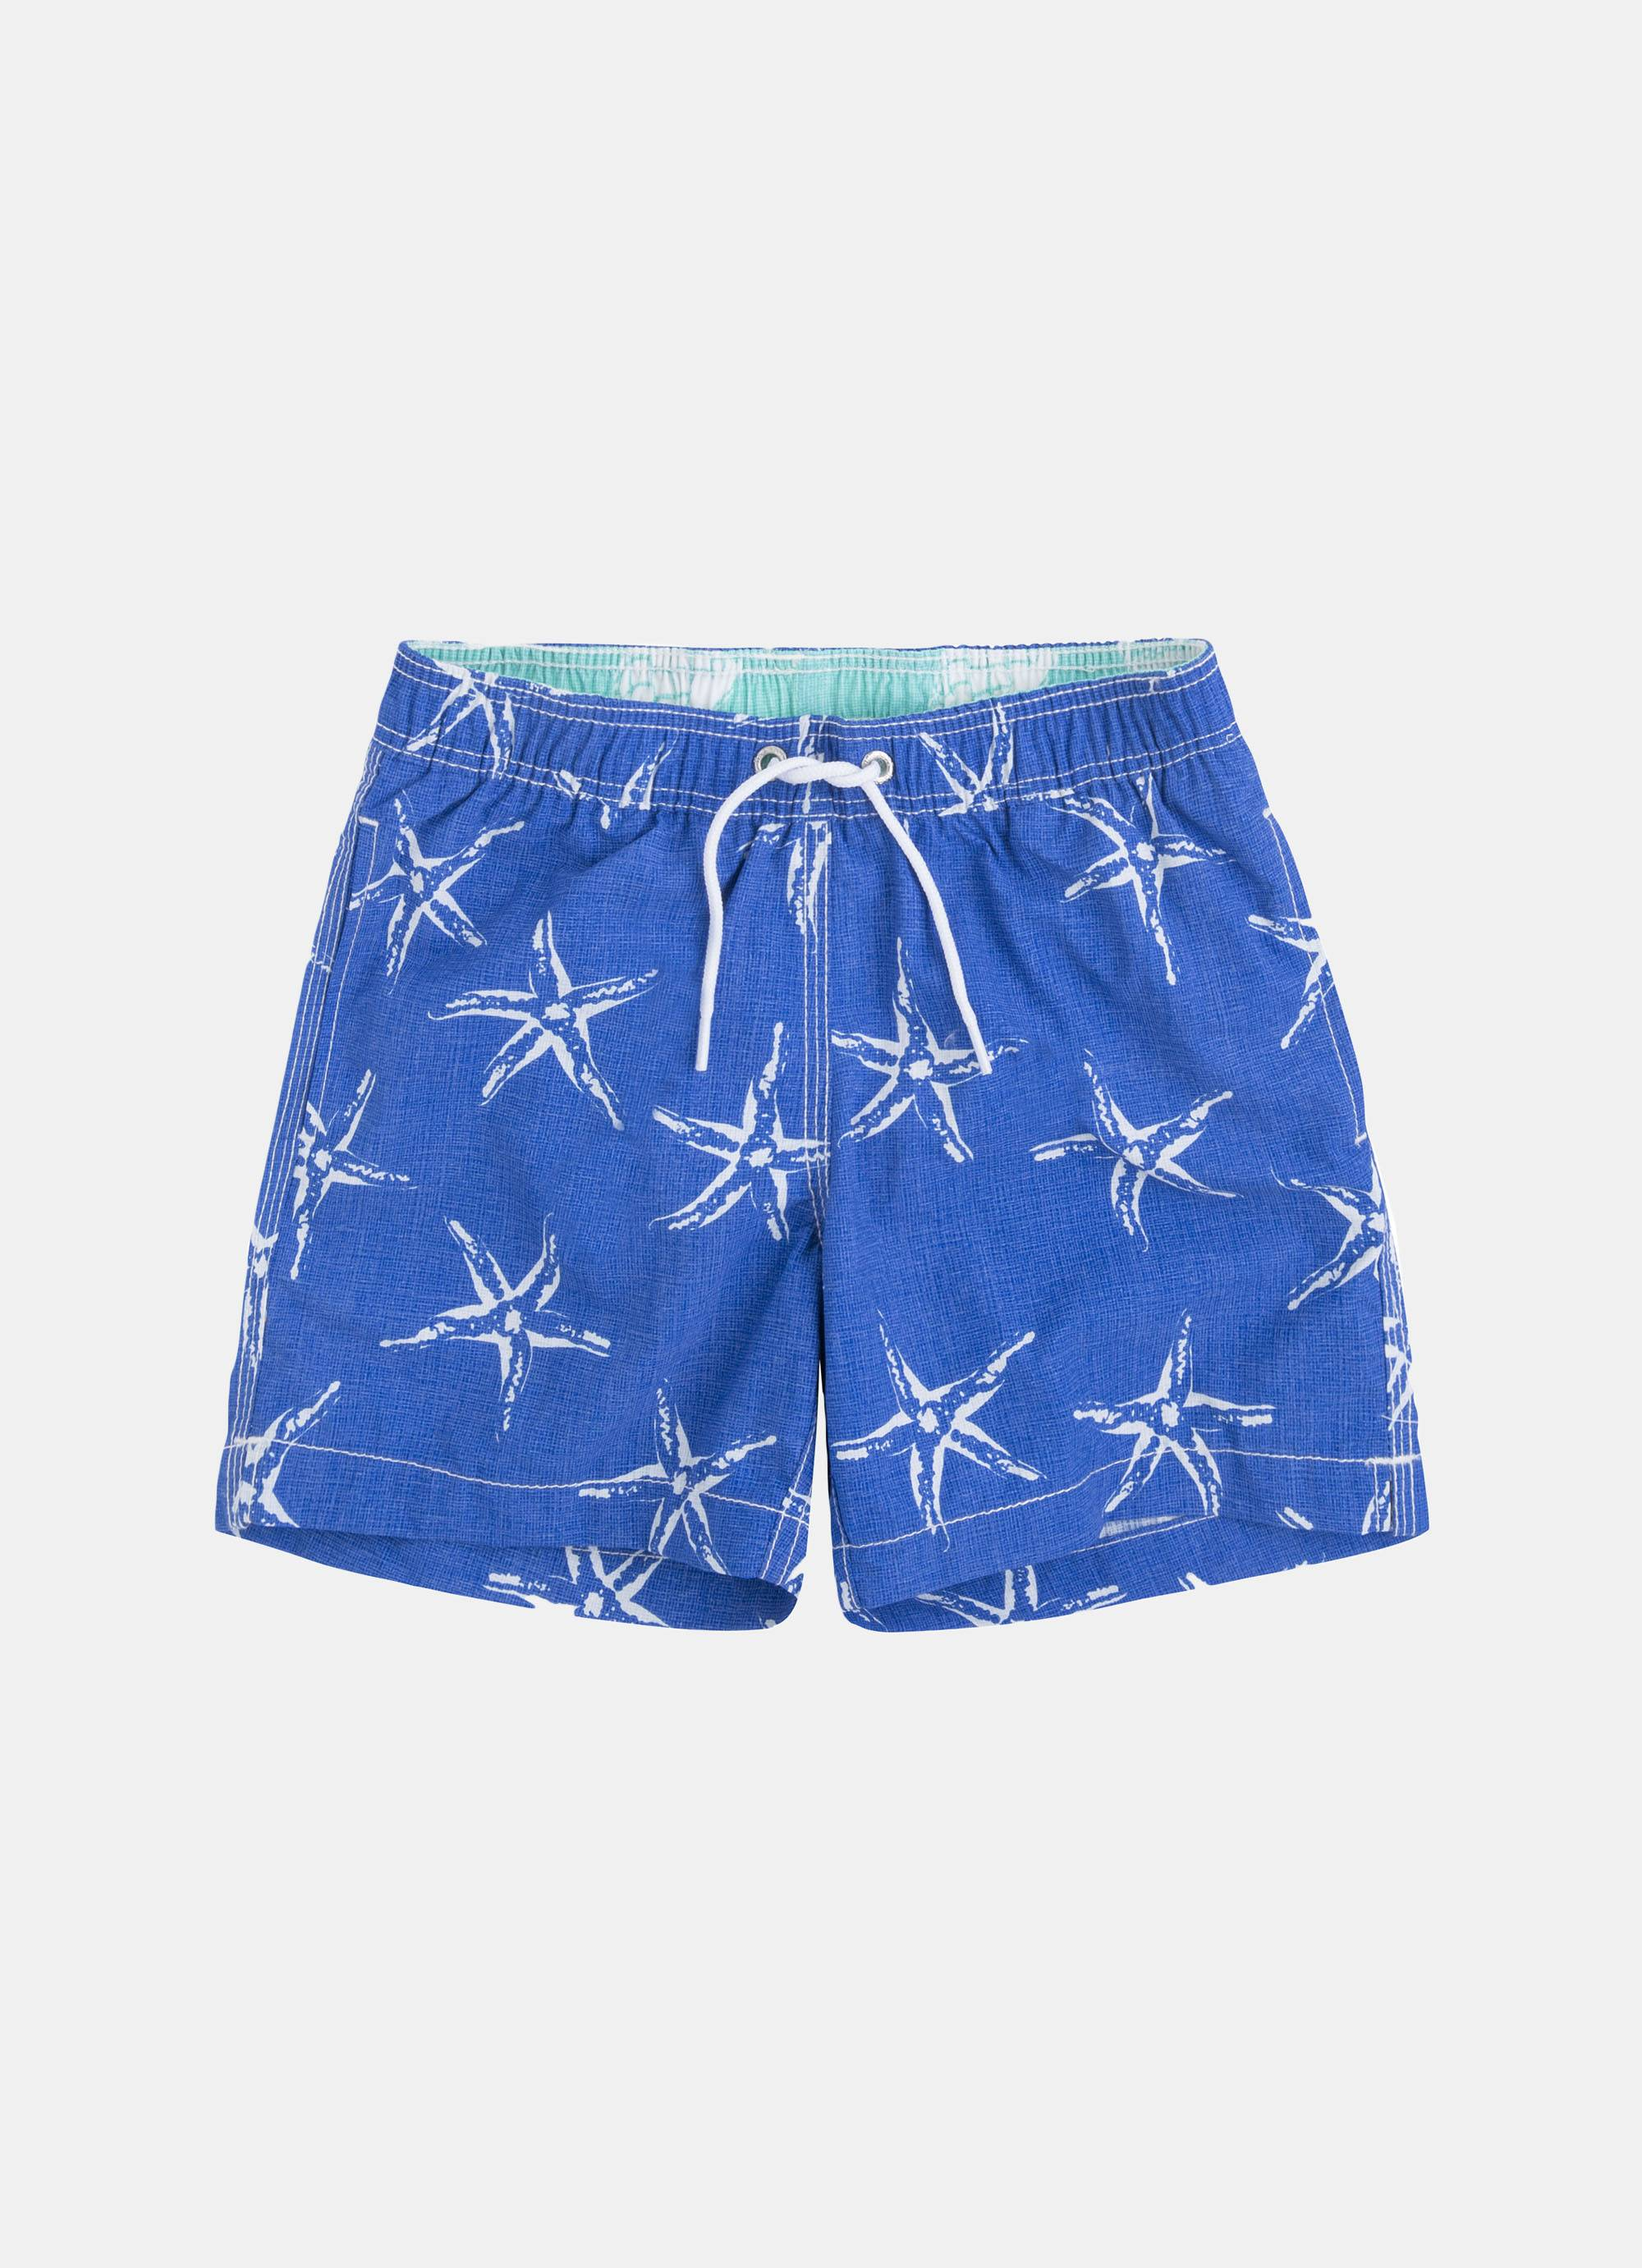 Sea Star Shorts</a>